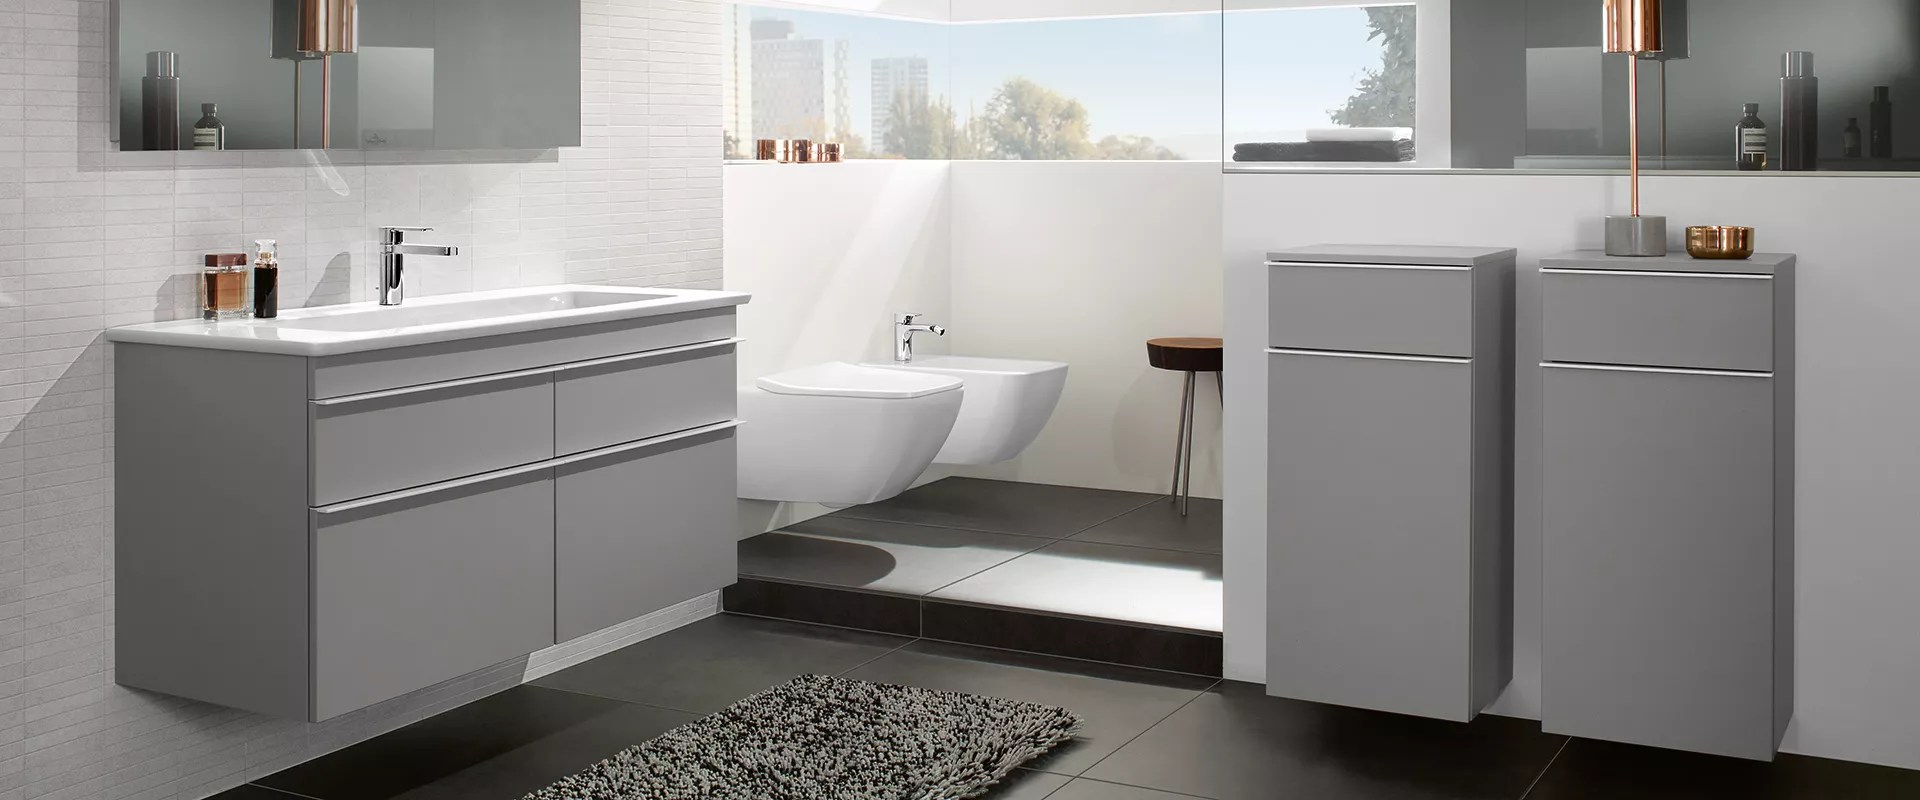 Toiletten Von Villeroy Und Boch Venticello Design All Down The Line